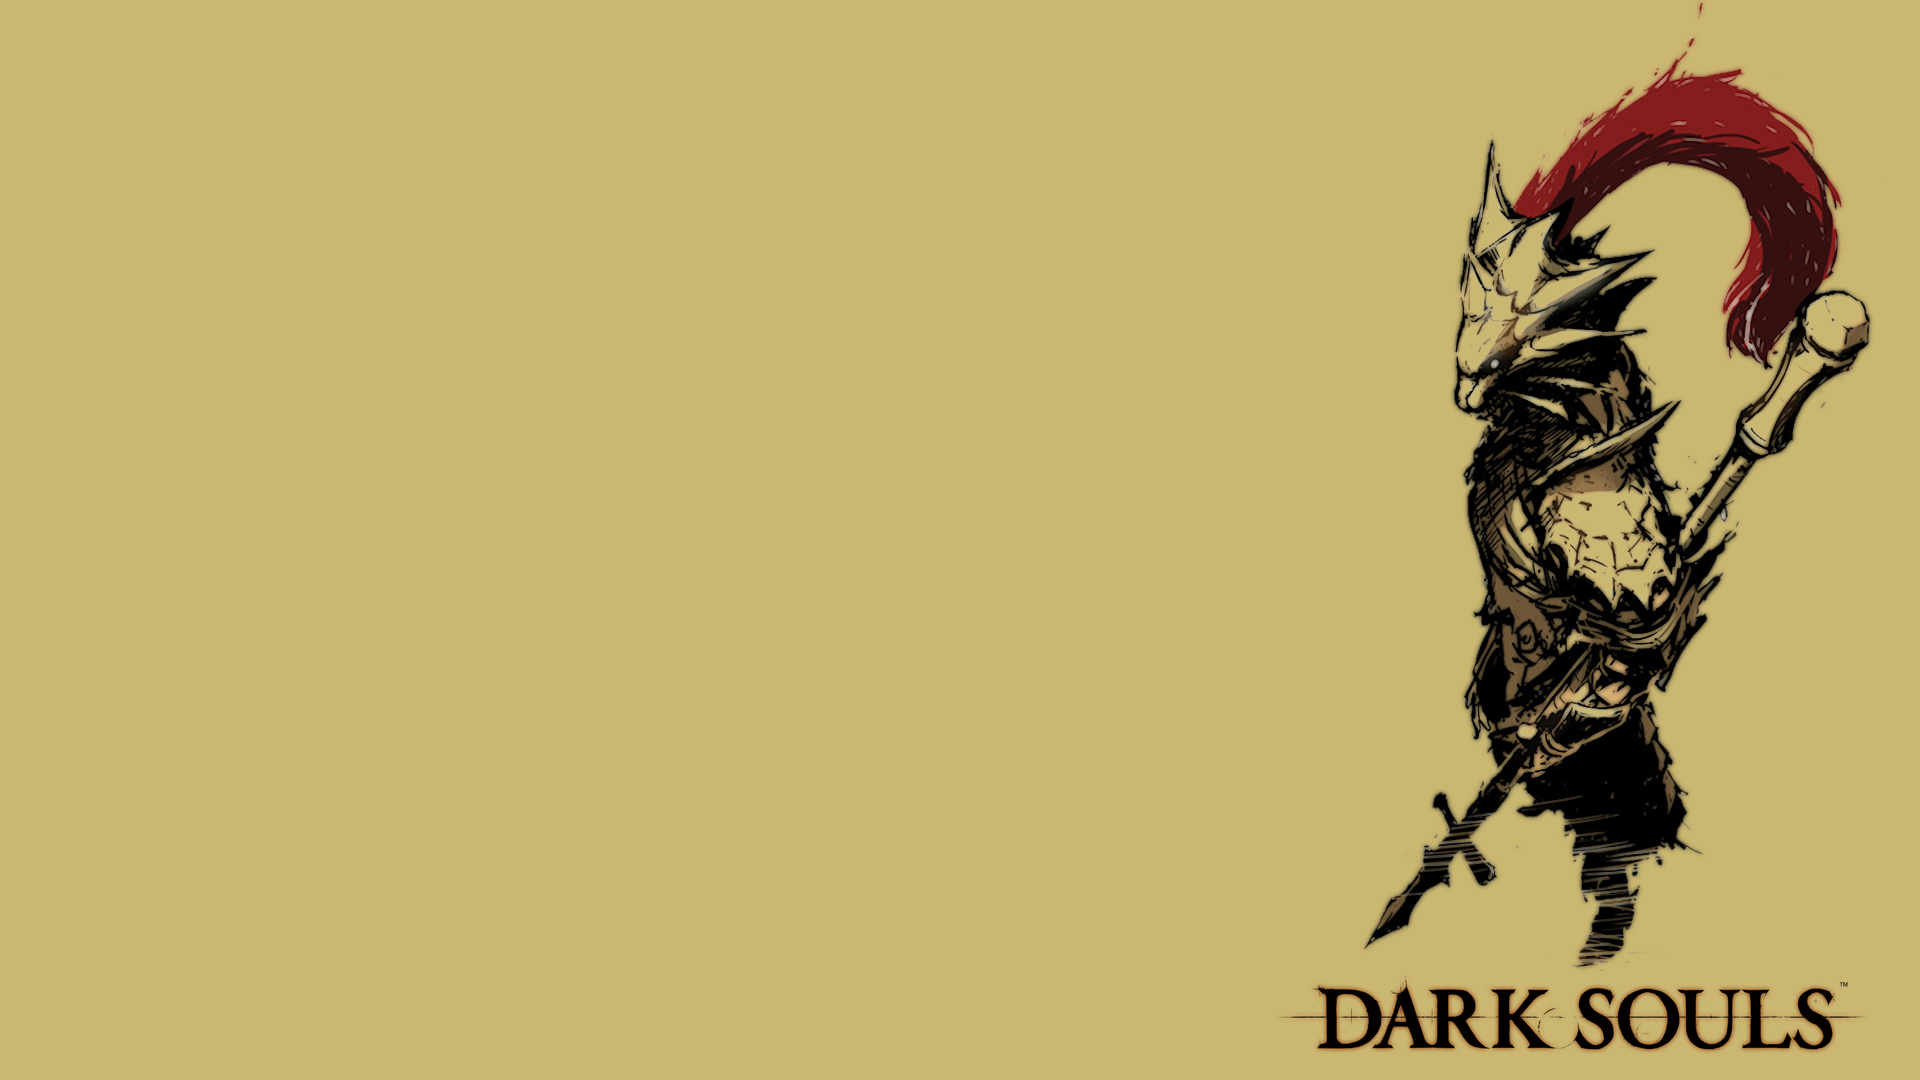 Dark Souls Hd Wallpaper Background Image 1920x1080